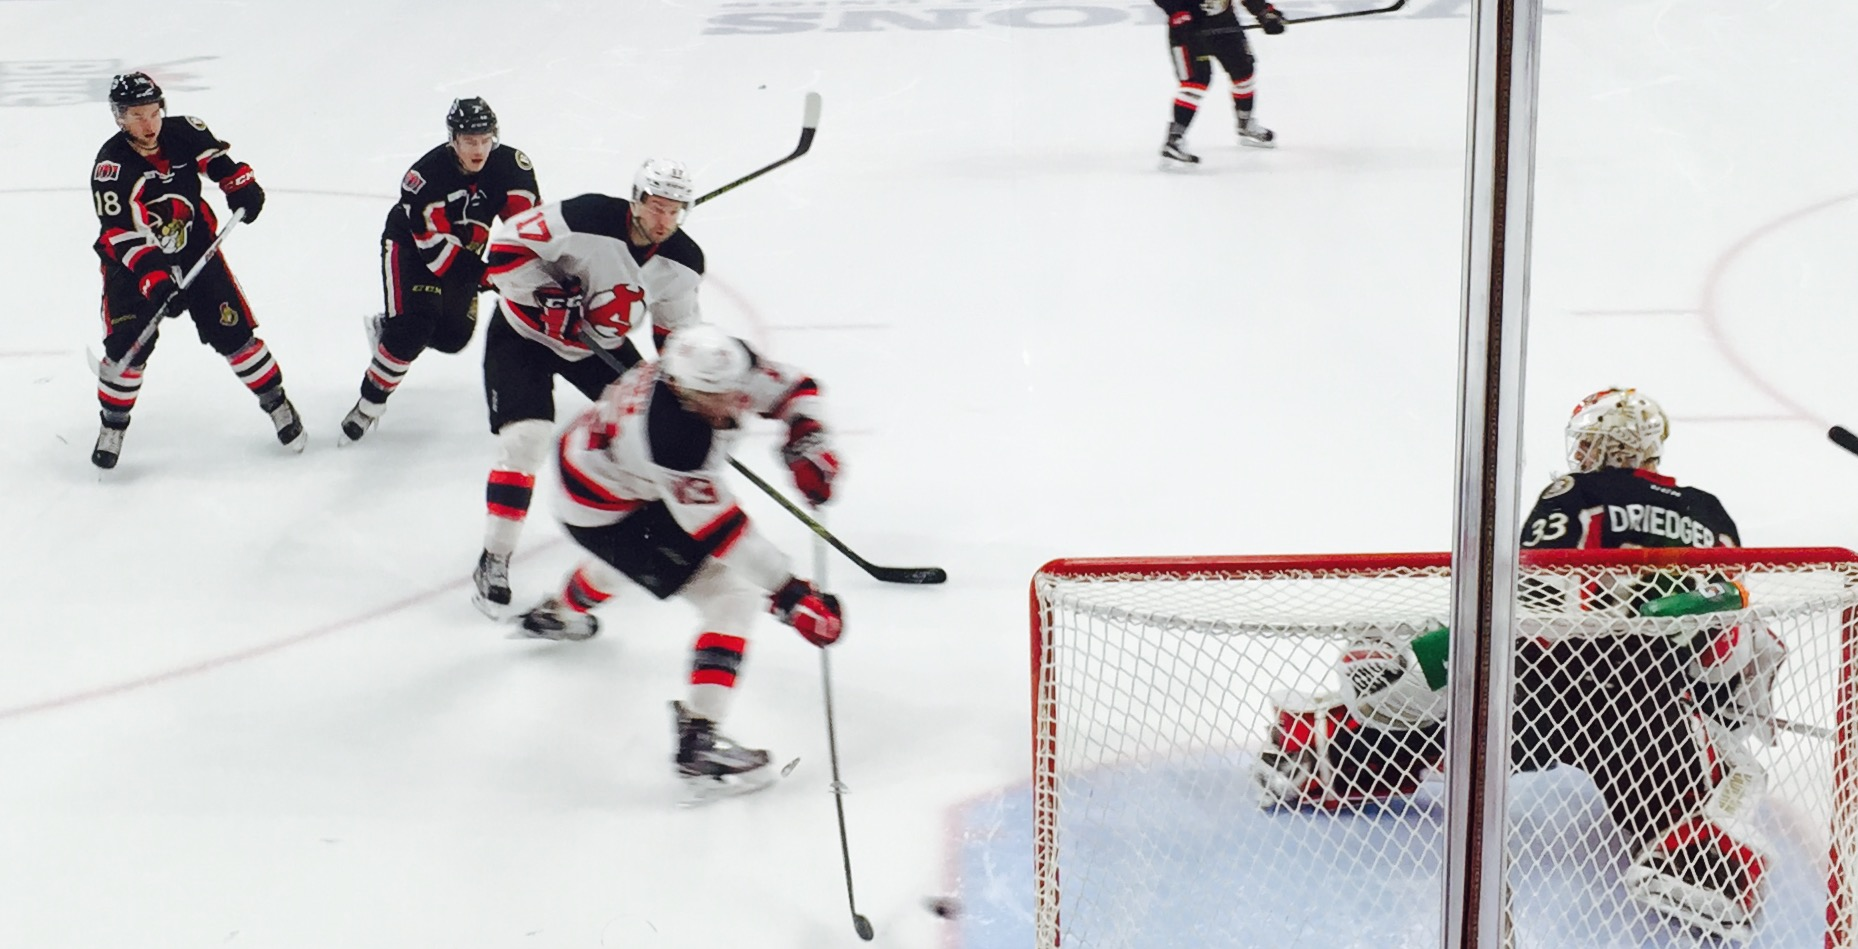 Ex-Sens Jim O'Brien with the OT winner on Friday for the Devils.